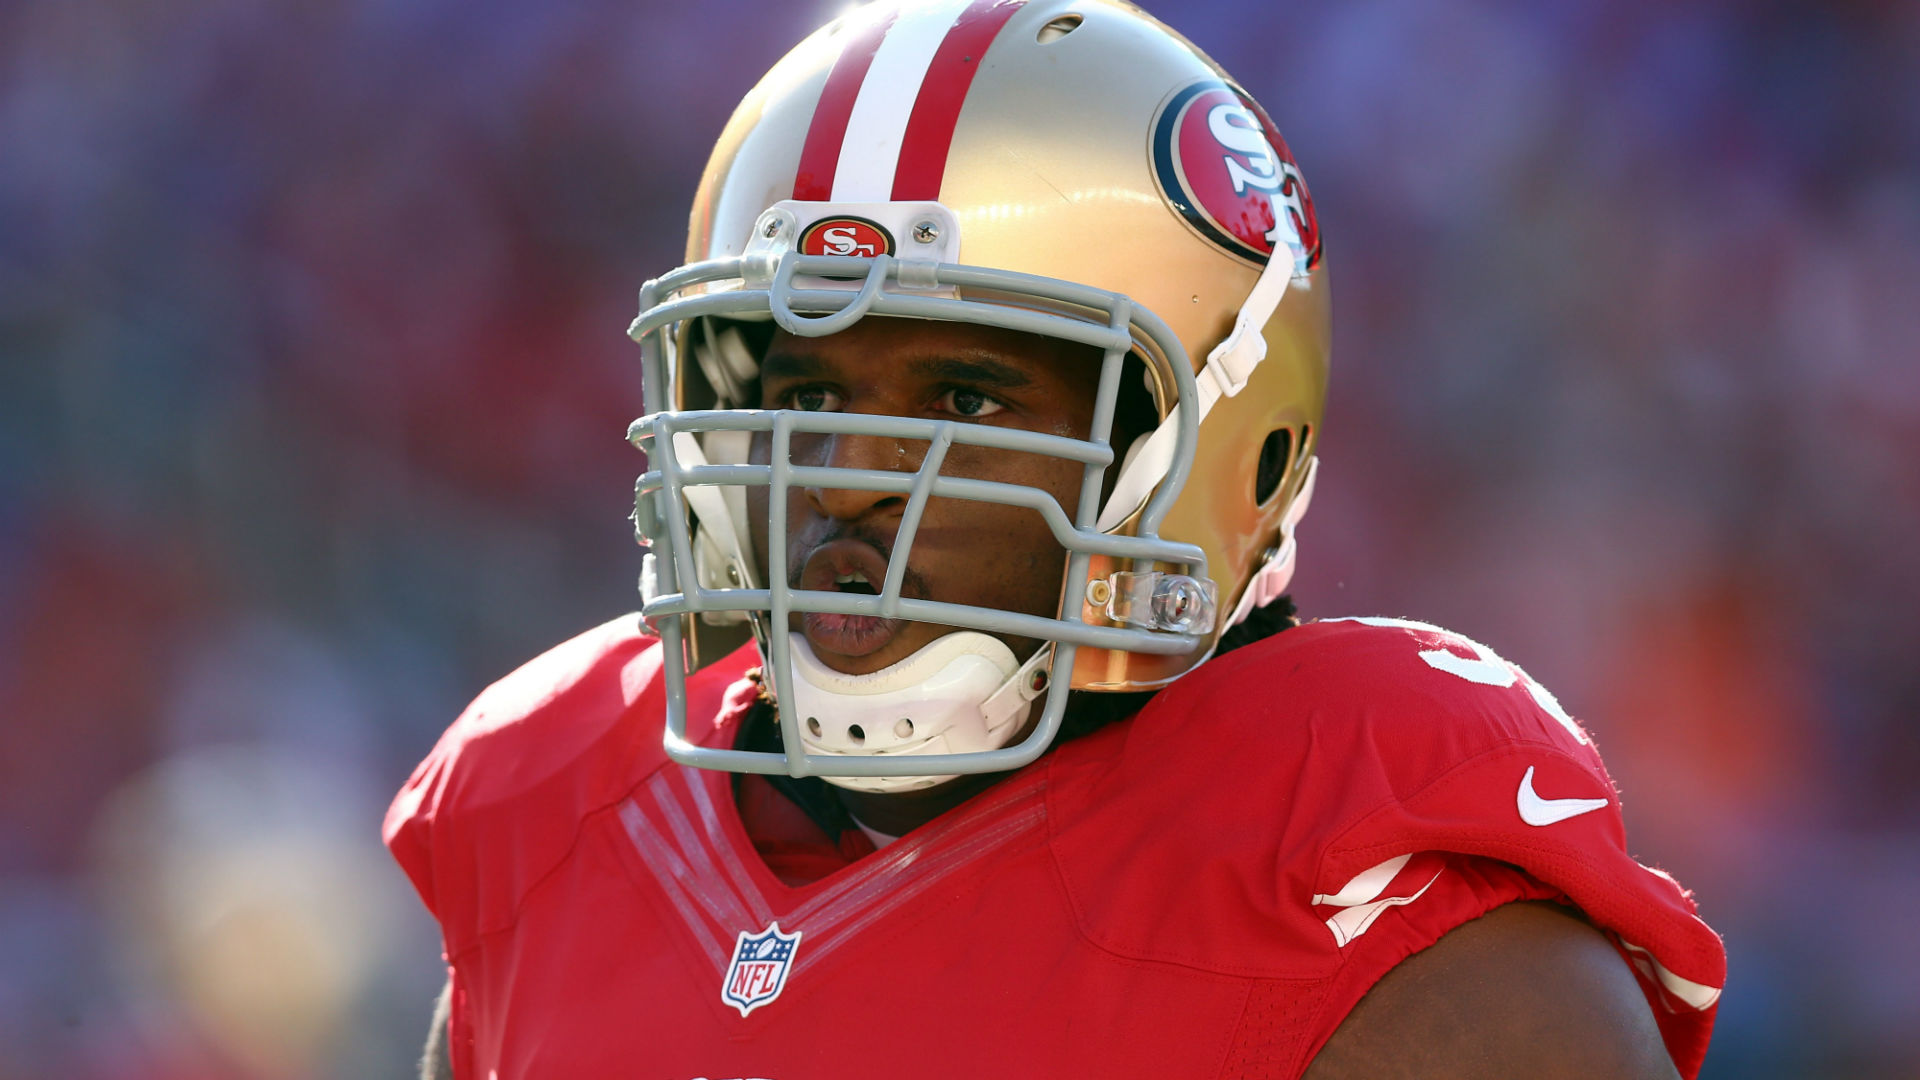 Ray McDonald arrested on domestic violence charge